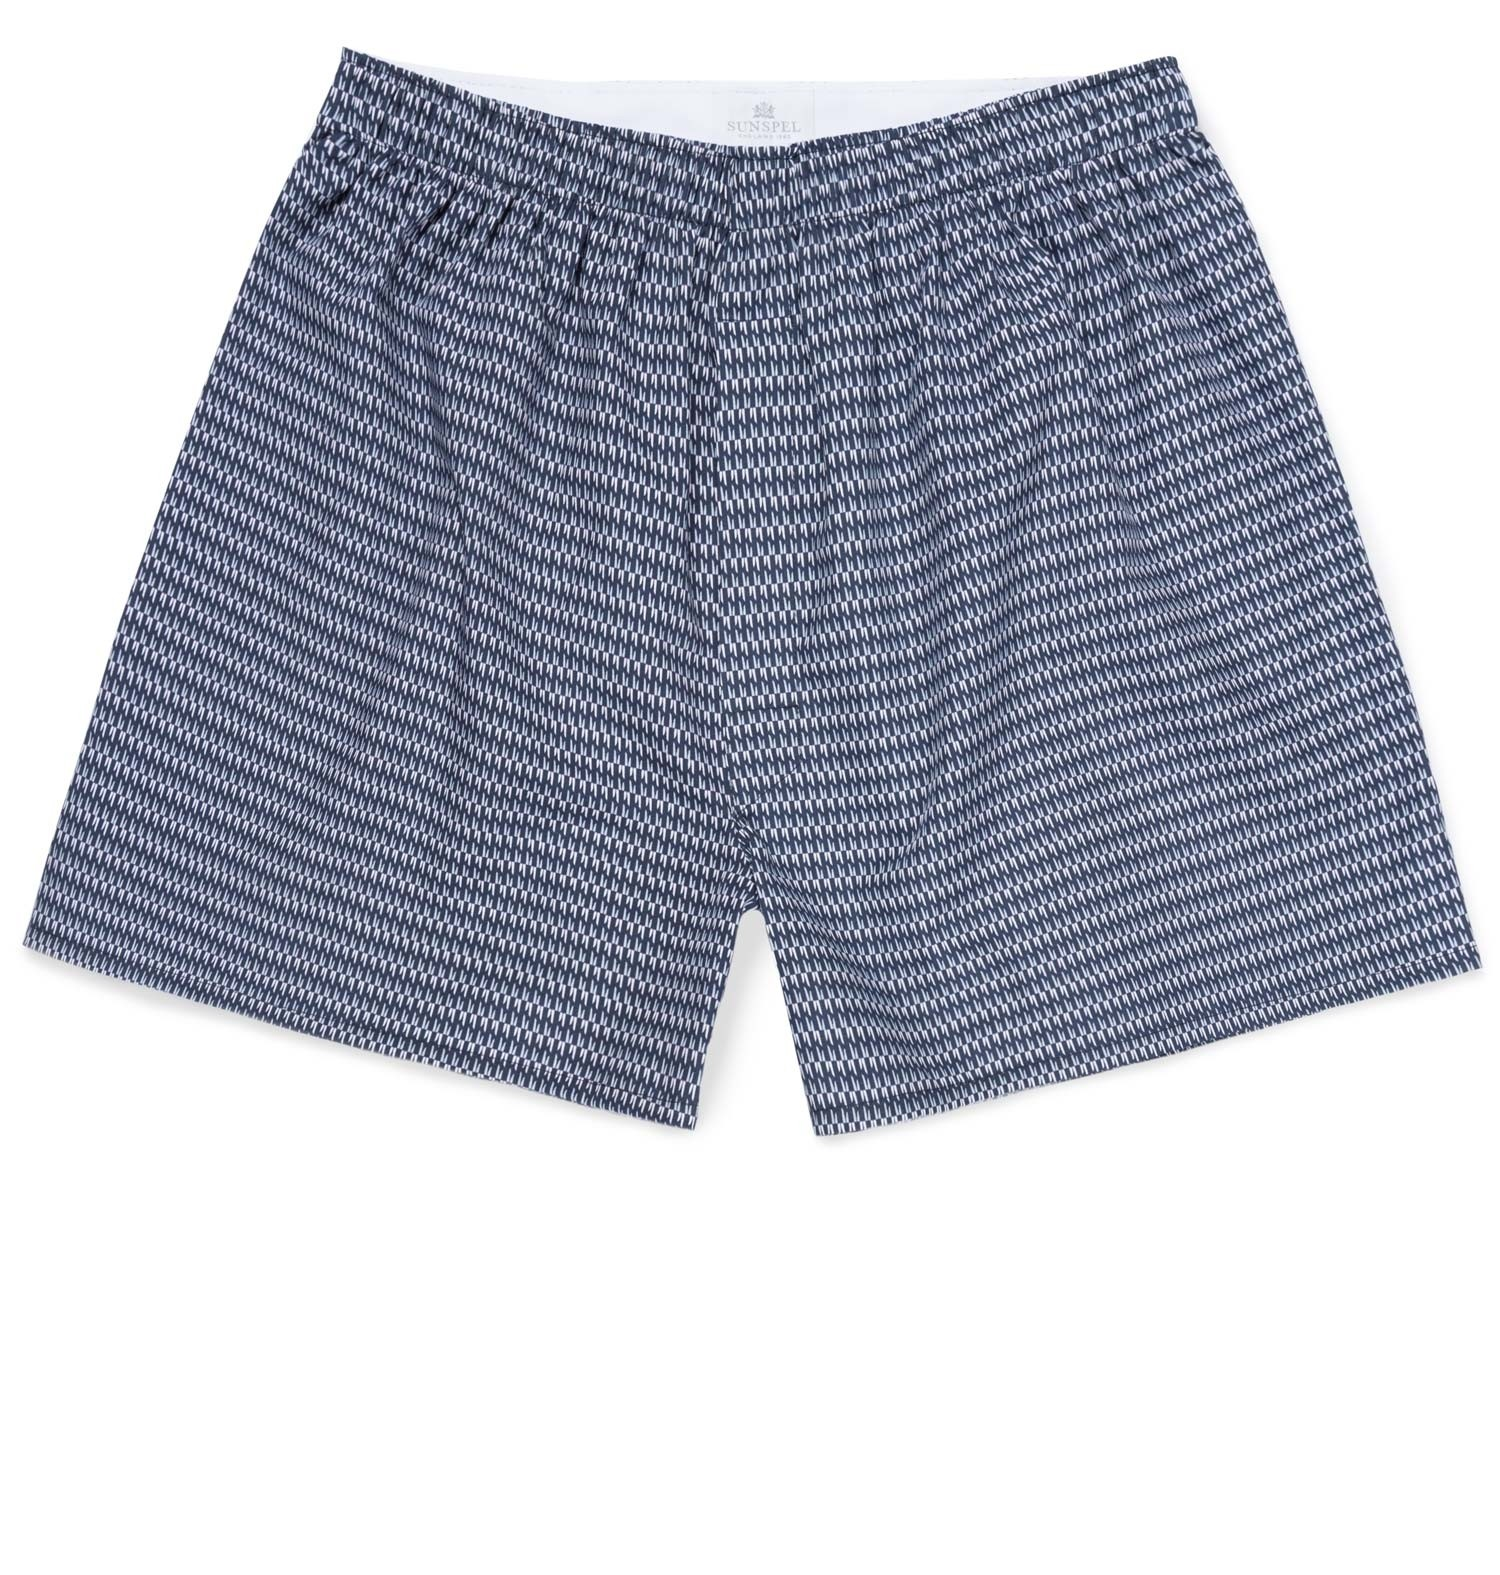 Sunspel Geo Navy Men's Printed Cotton Boxer Shorts